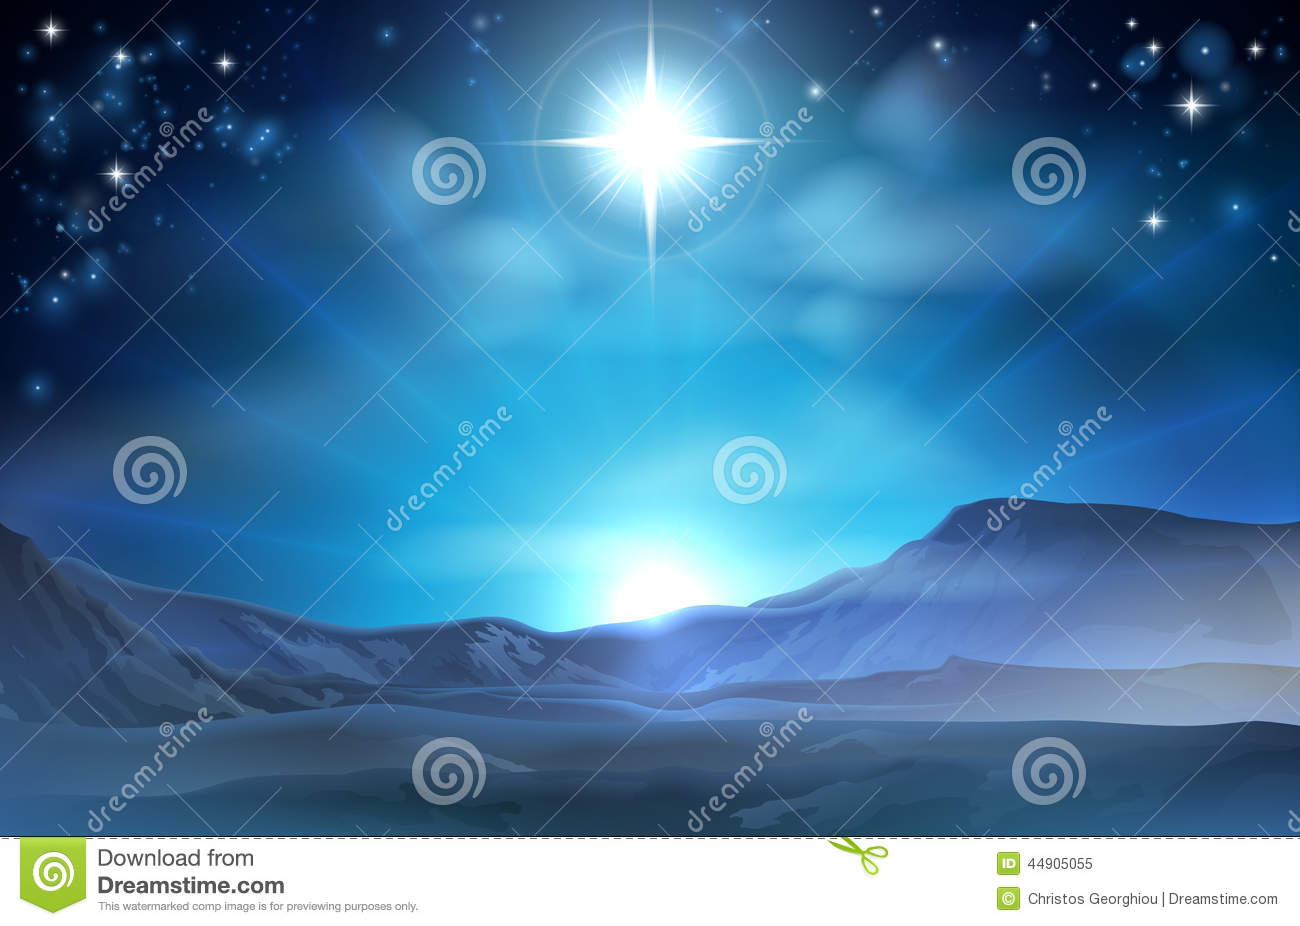 Christmas Nativity Star of Bethlehem illustration of the star over the ...